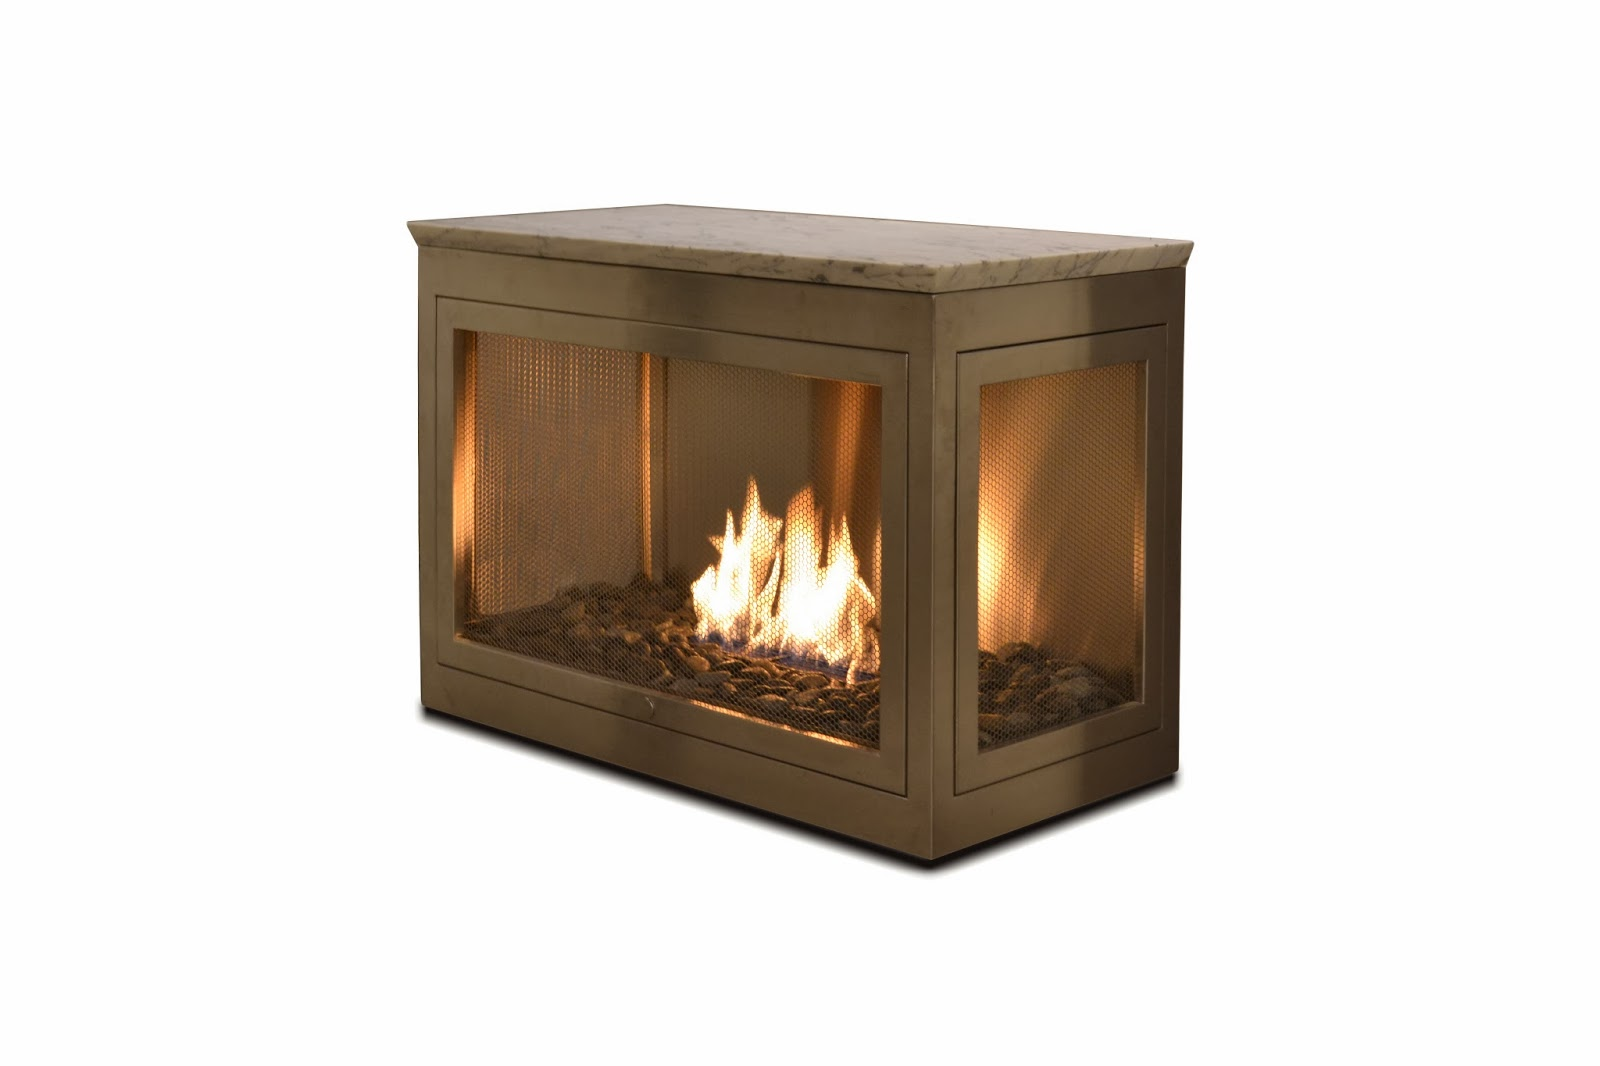 fires indoor fireplace jpg system are spark burner gas ideas linear open modern ventless